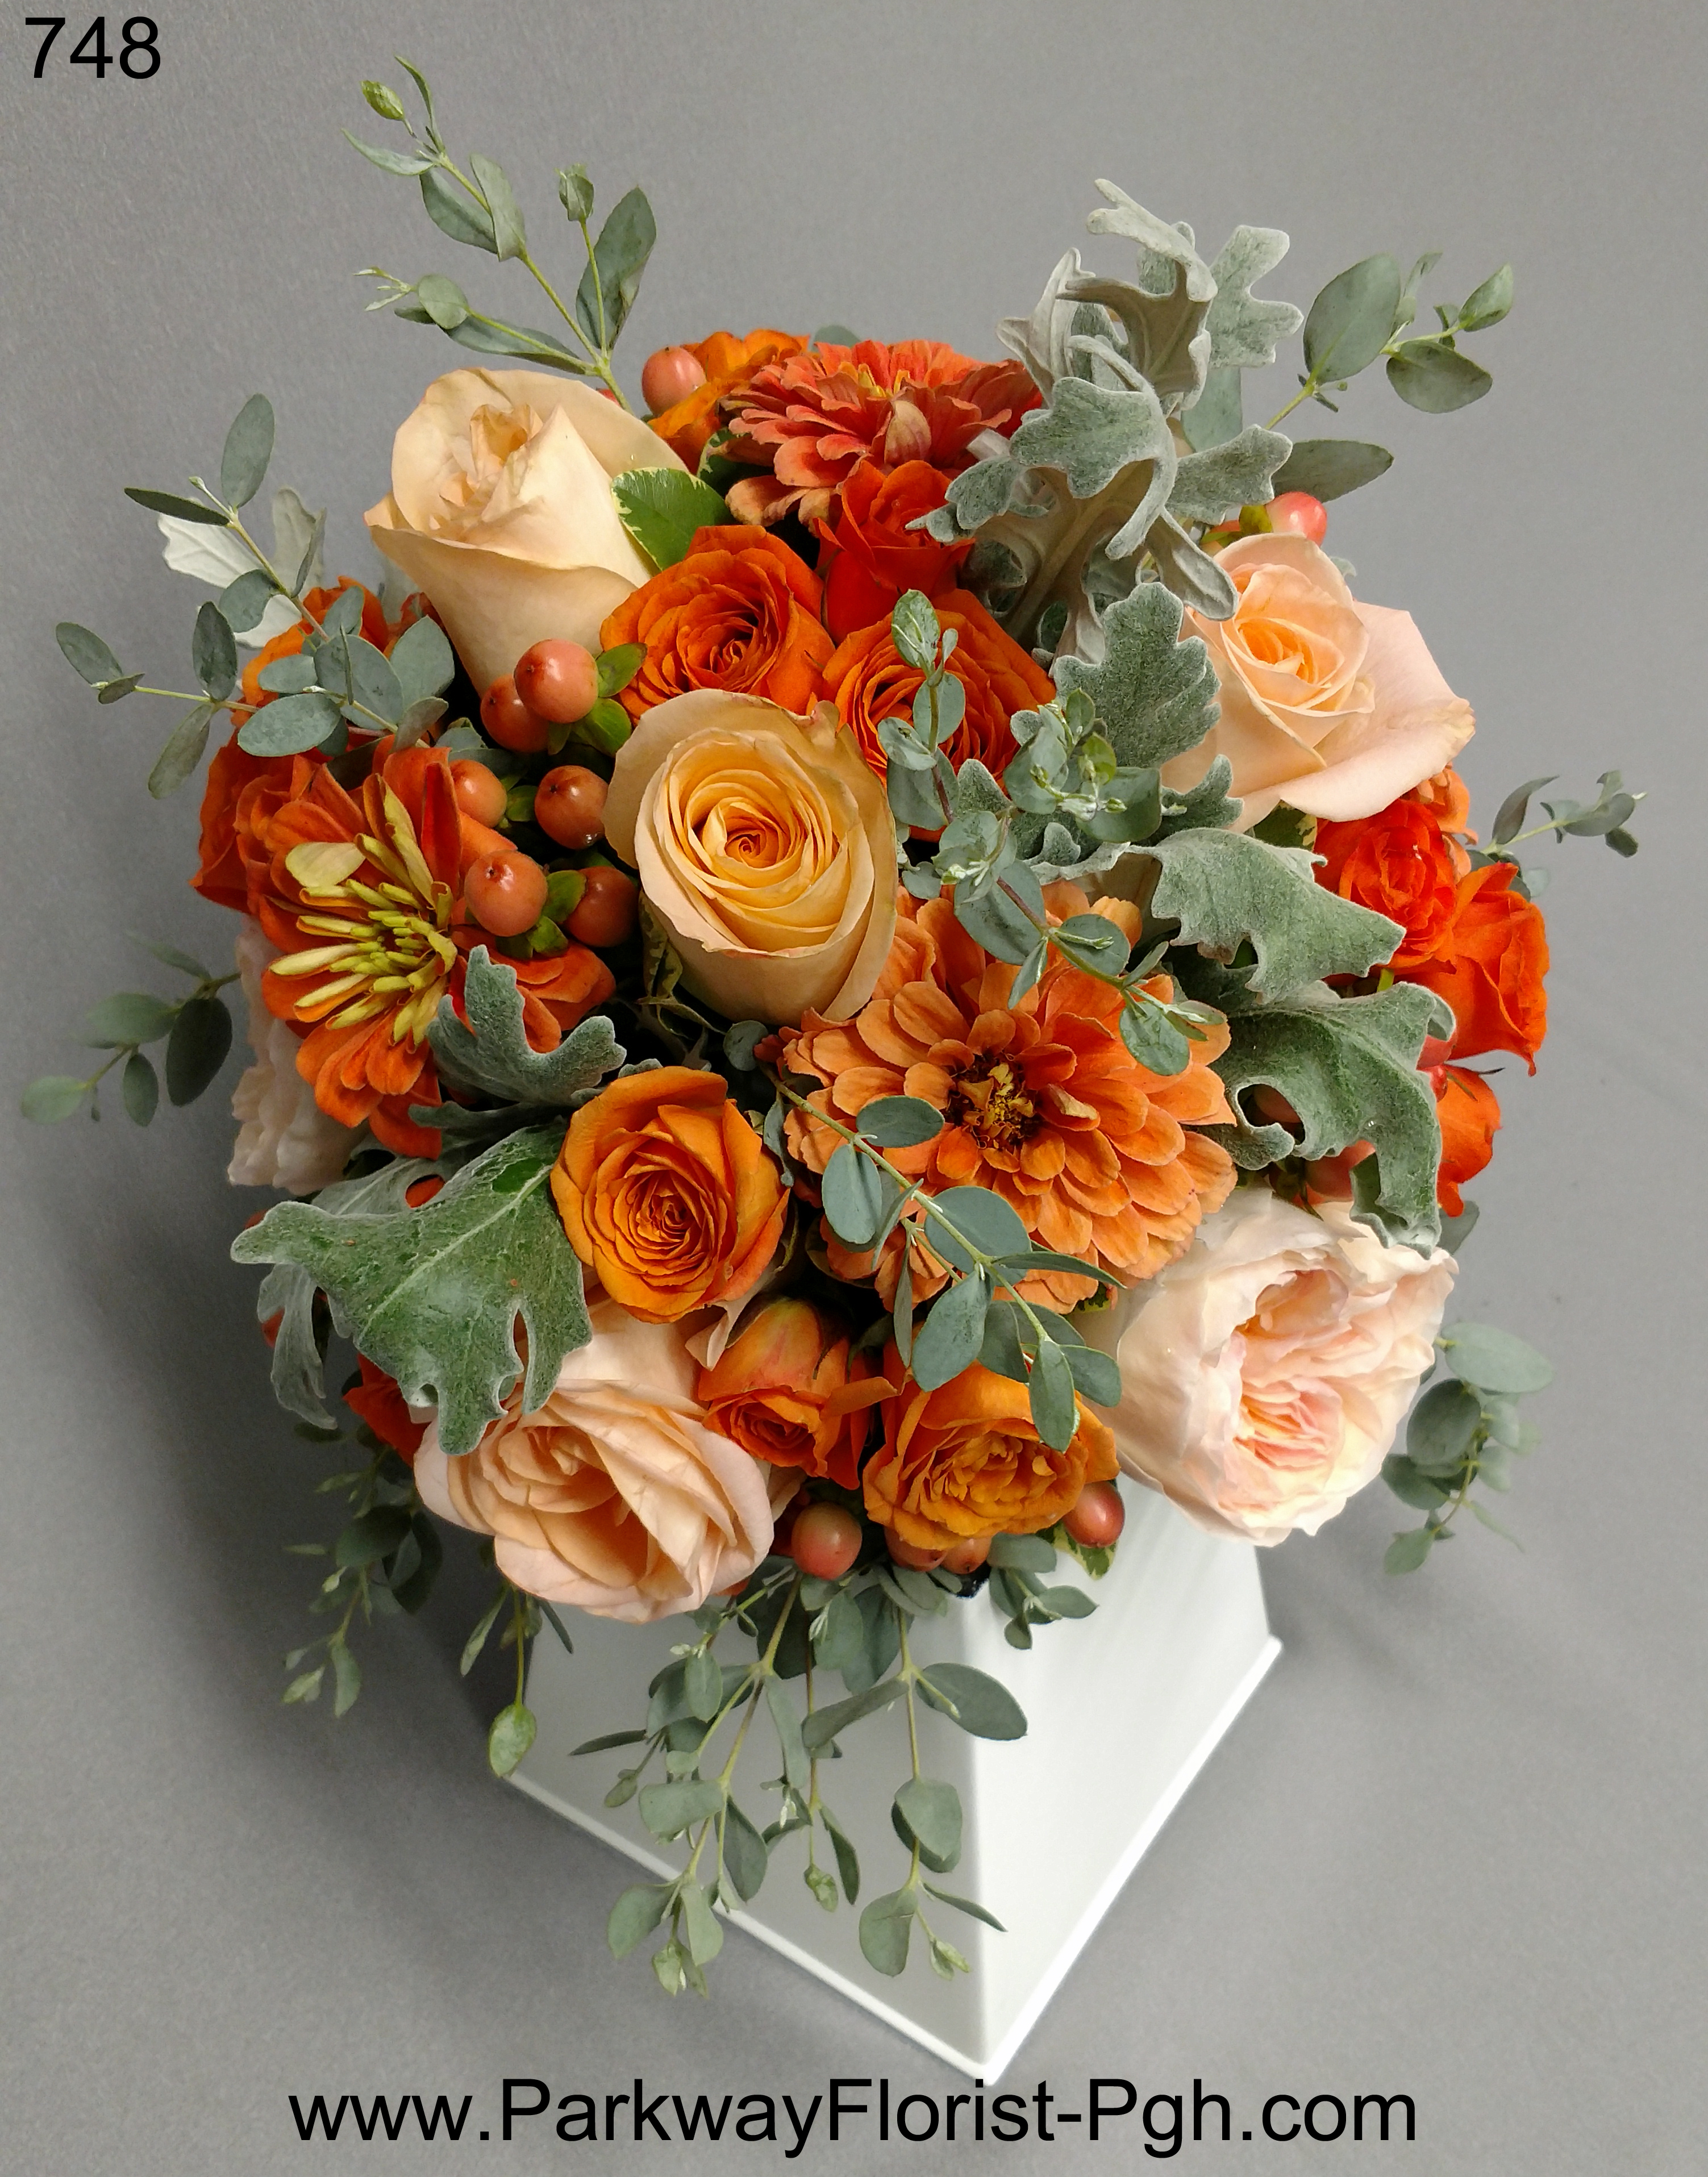 Fall flowers parkway florist pittsburgh blog what better way to celebrate than with the colors of fall decorating guest tables in the reception ballroom fresh seasonal locally grown bouquets izmirmasajfo